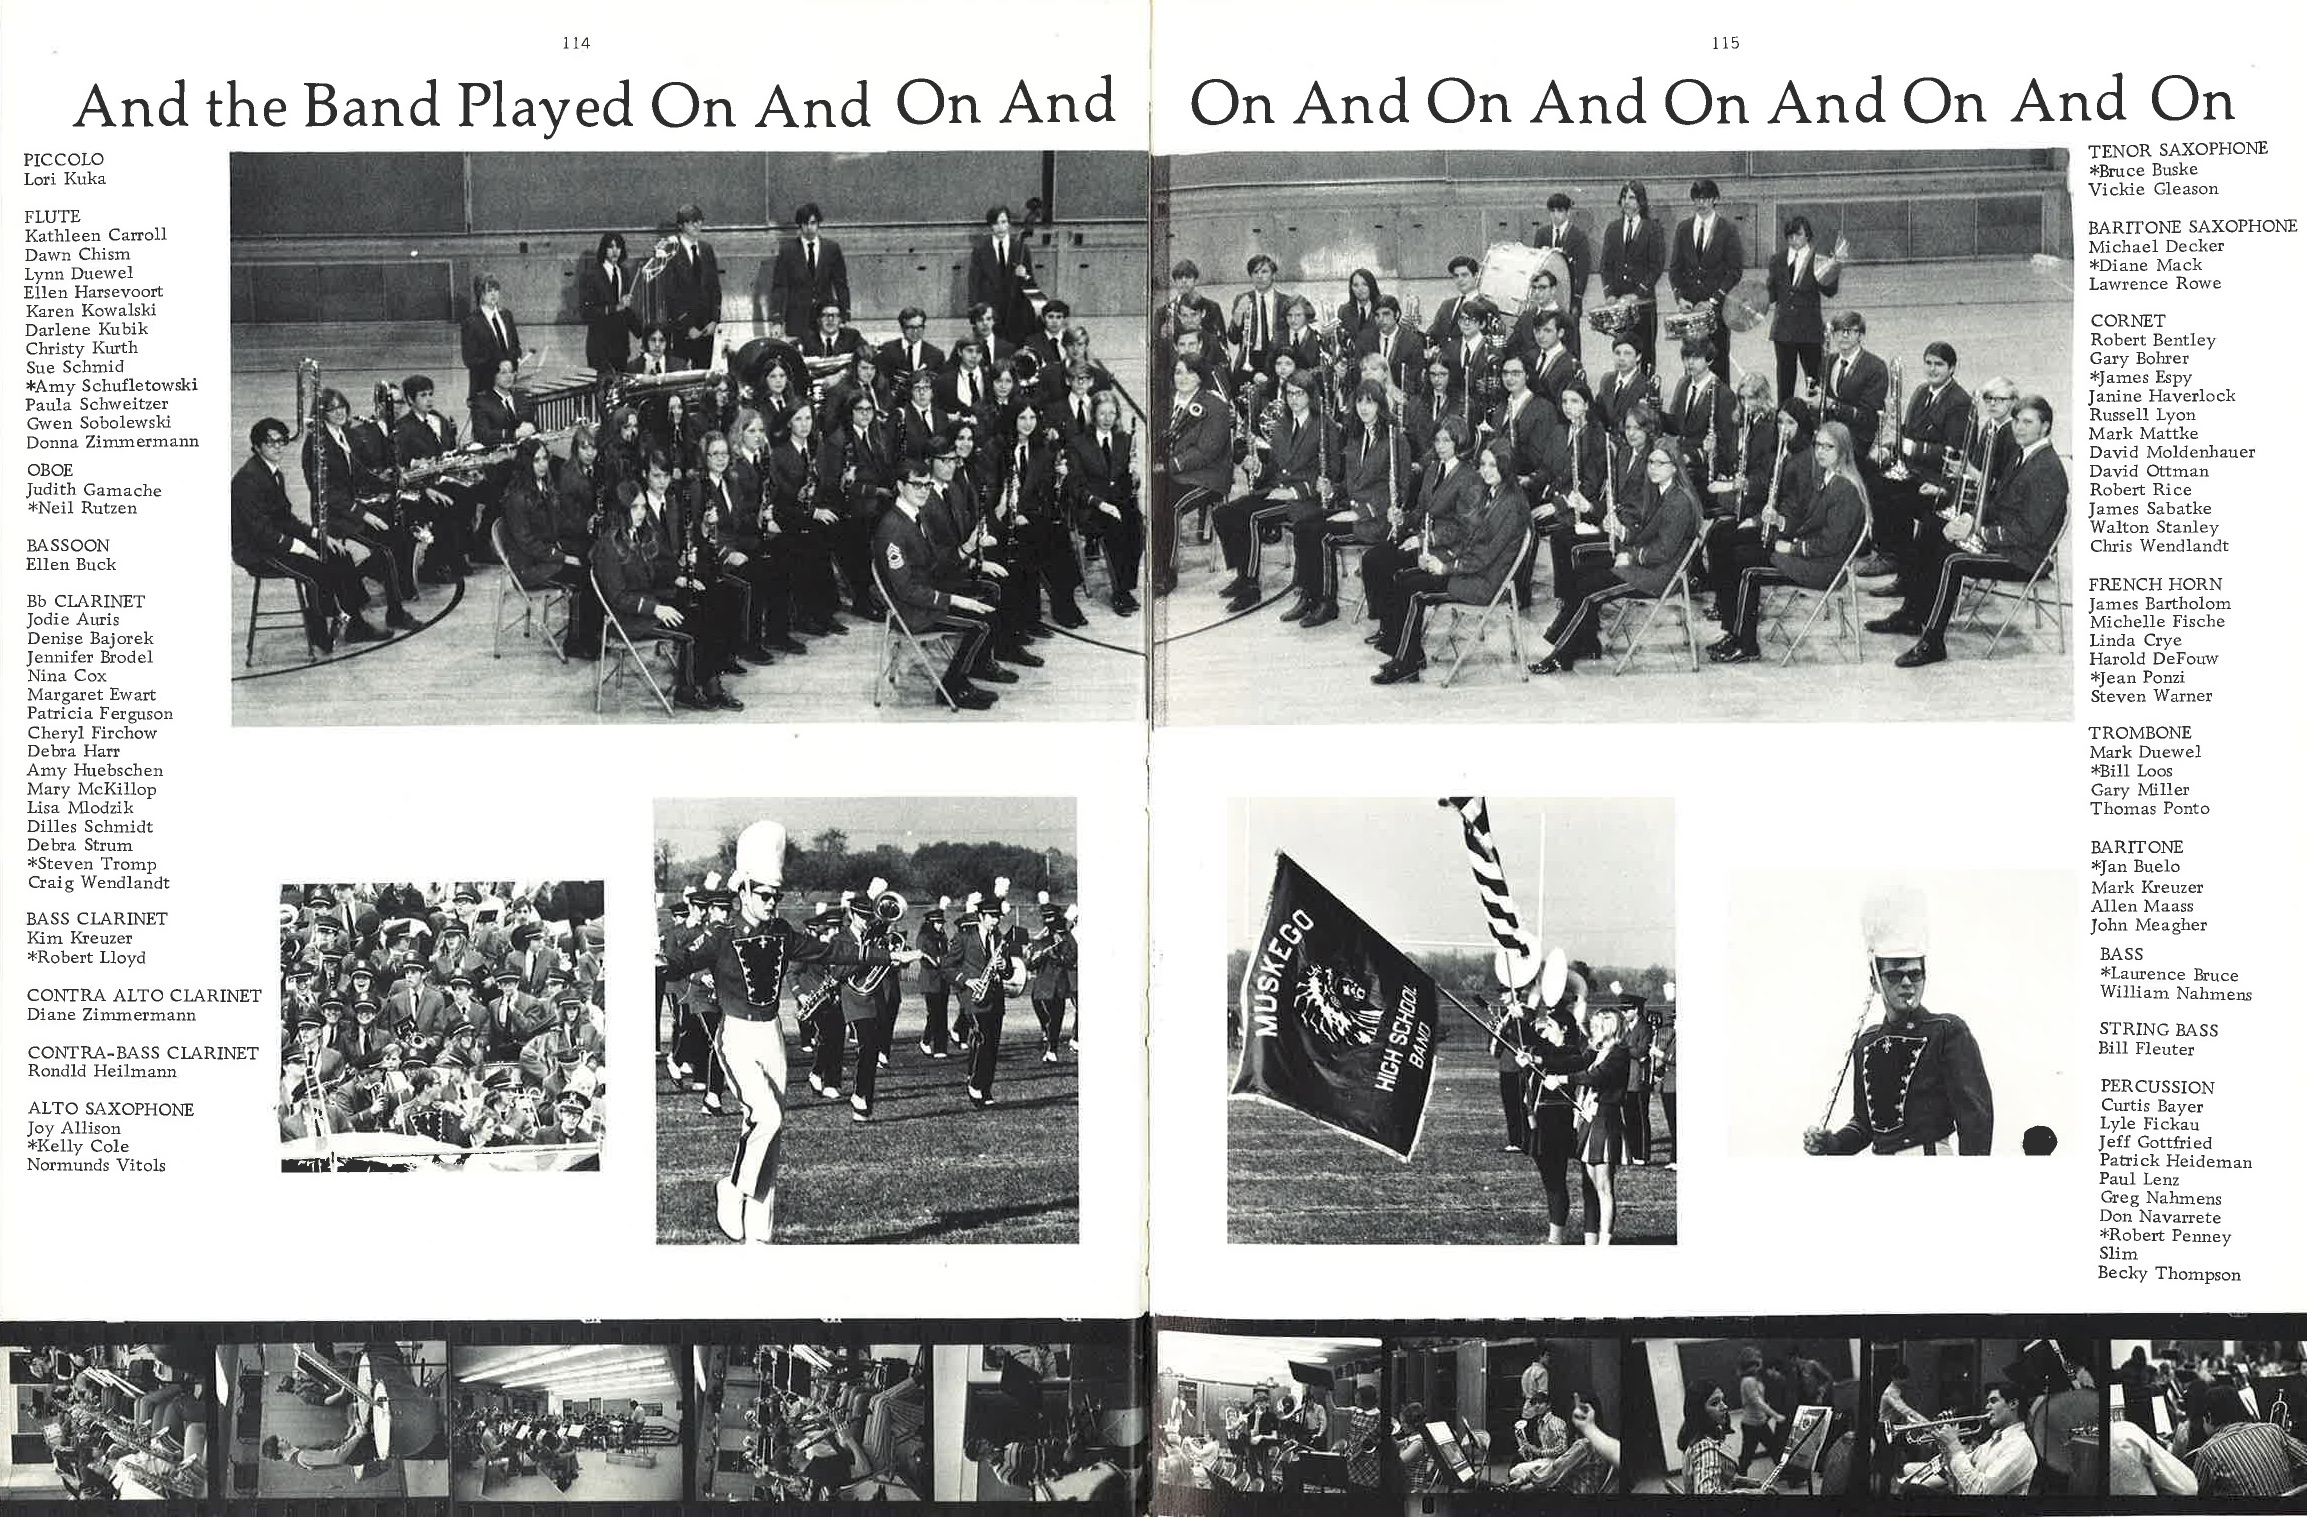 1972_Yearbook_114-115.jpg